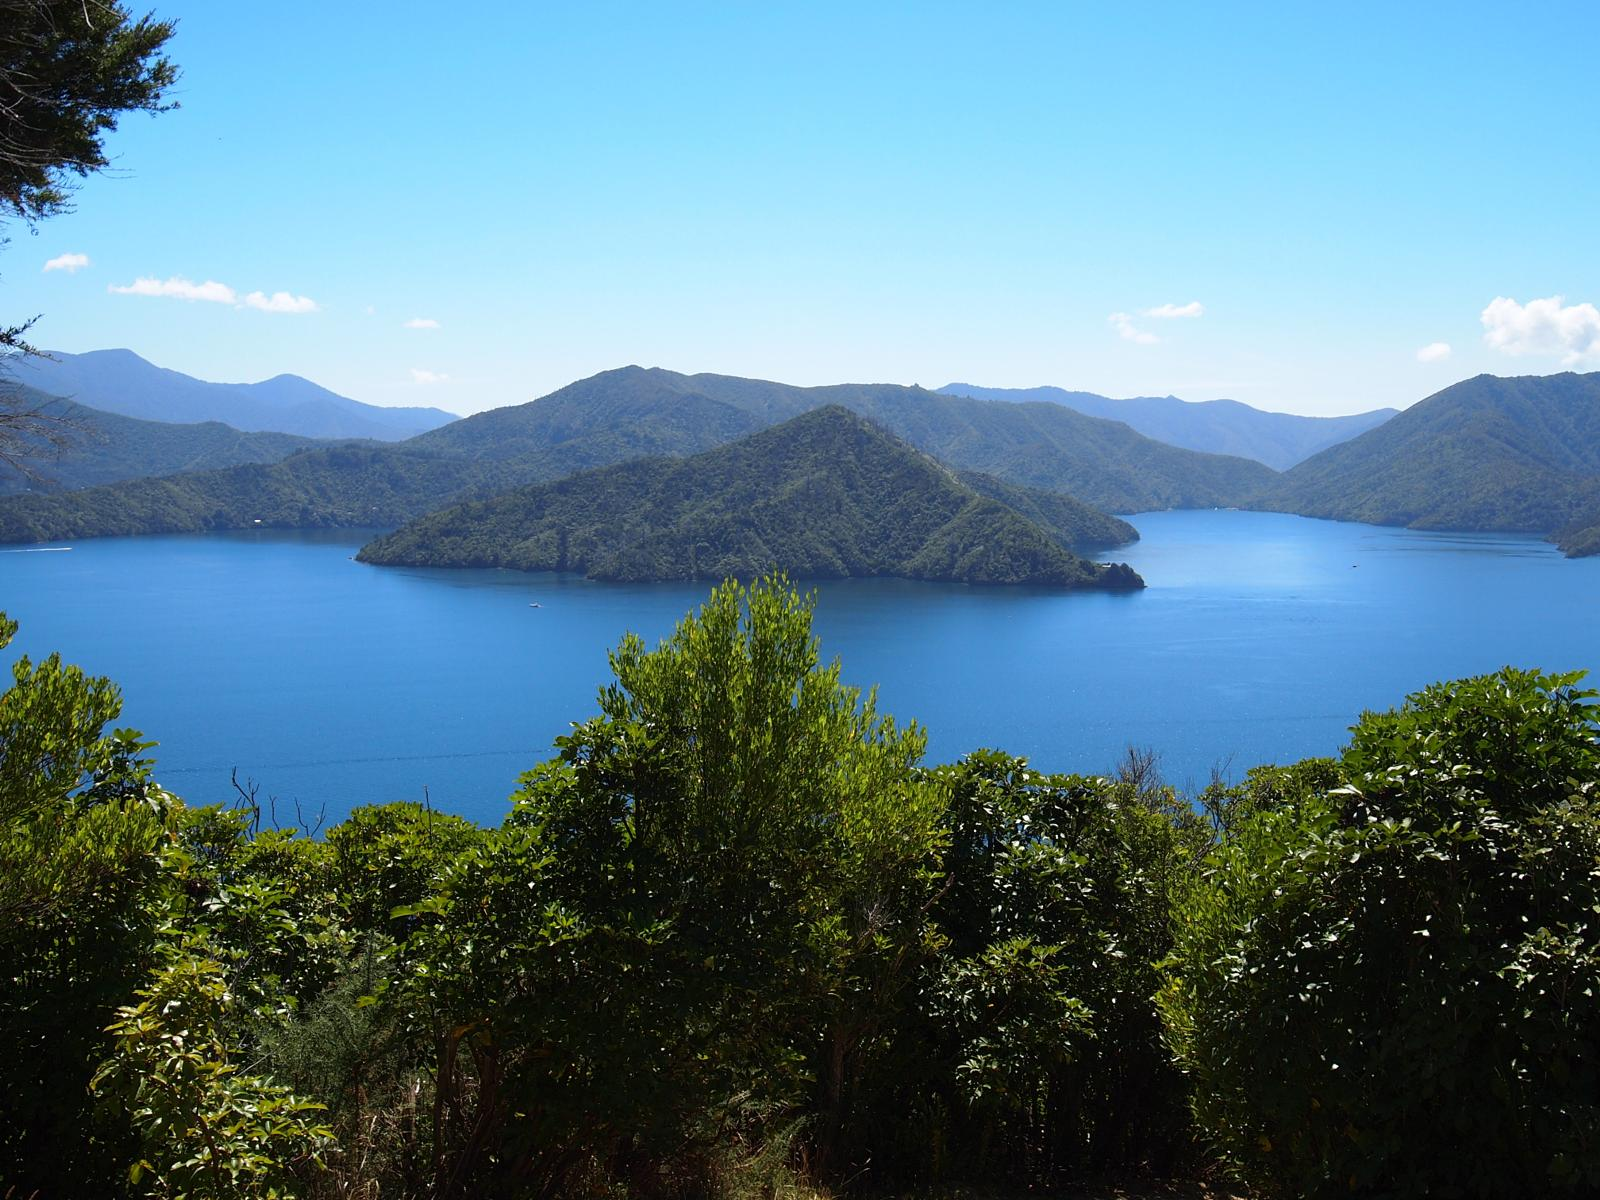 argazkia Viewpoints of Picton and Queen Charlotte Sound